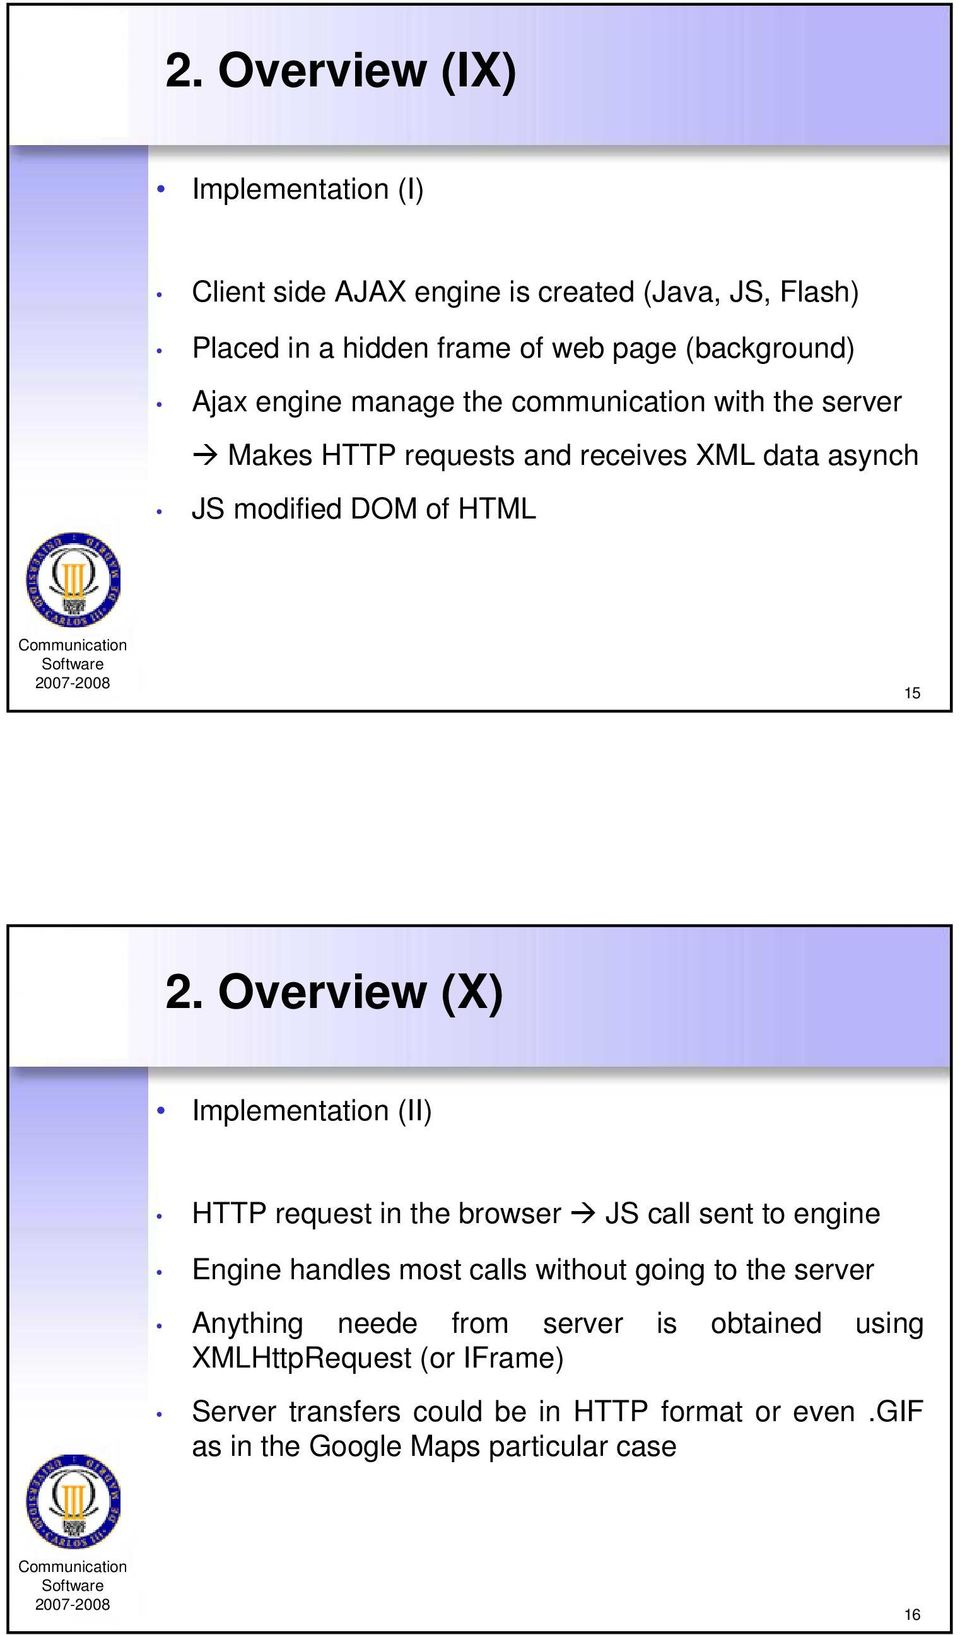 Overview (X) Implementation (II) HTTP request in the browser JS call sent to engine Engine handles most calls without going to the server